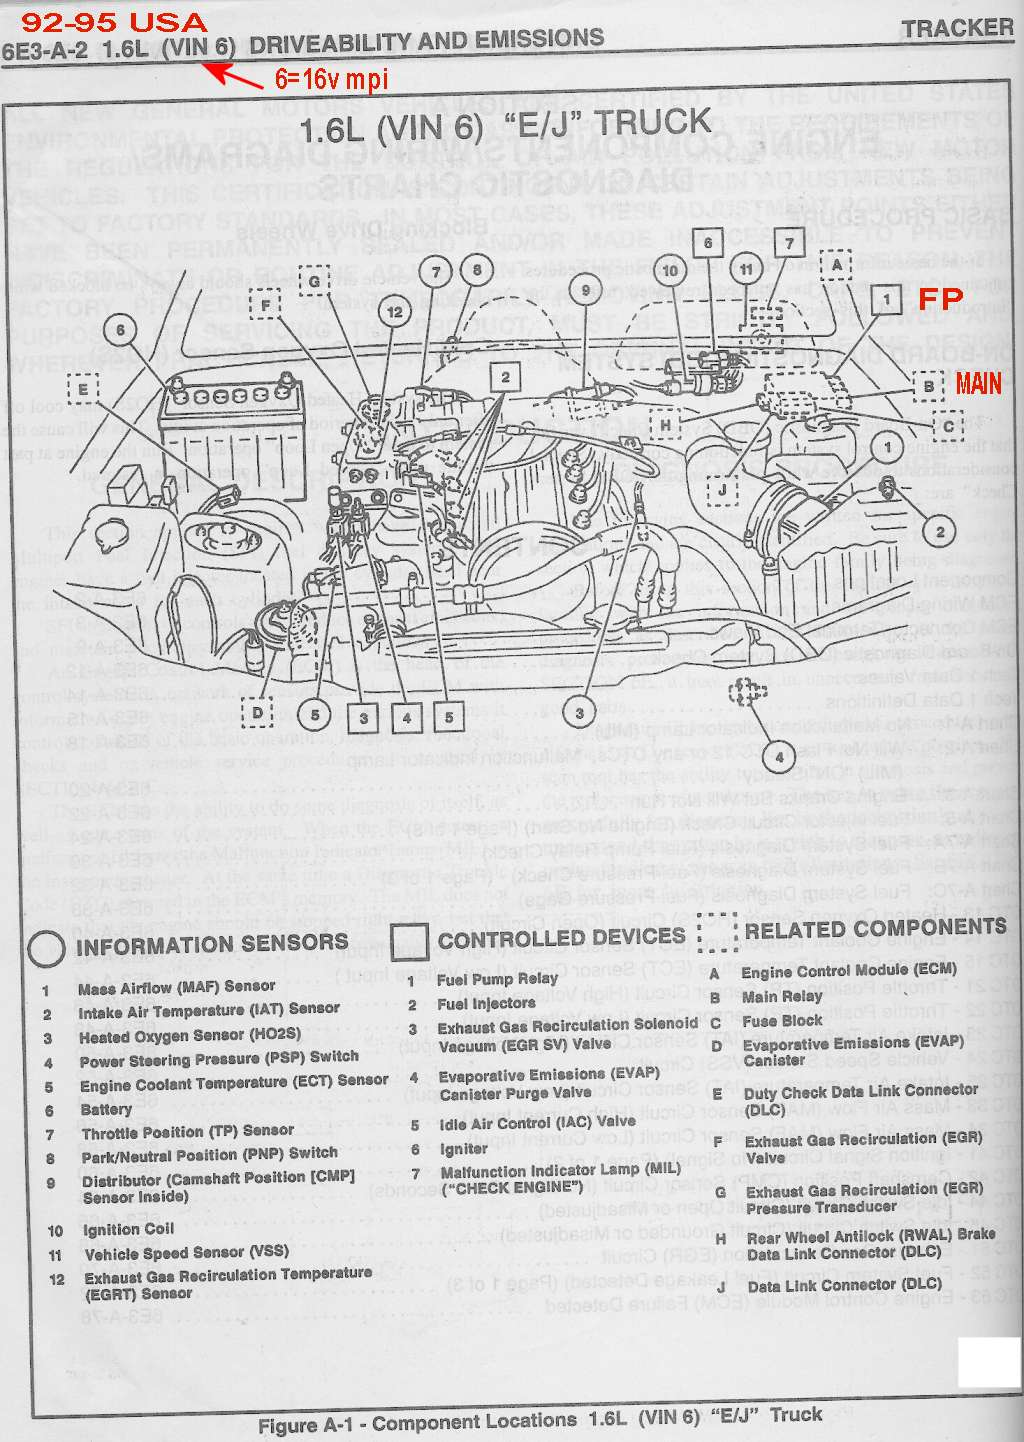 Unified Ecm Wiring Diagram Components John Deere